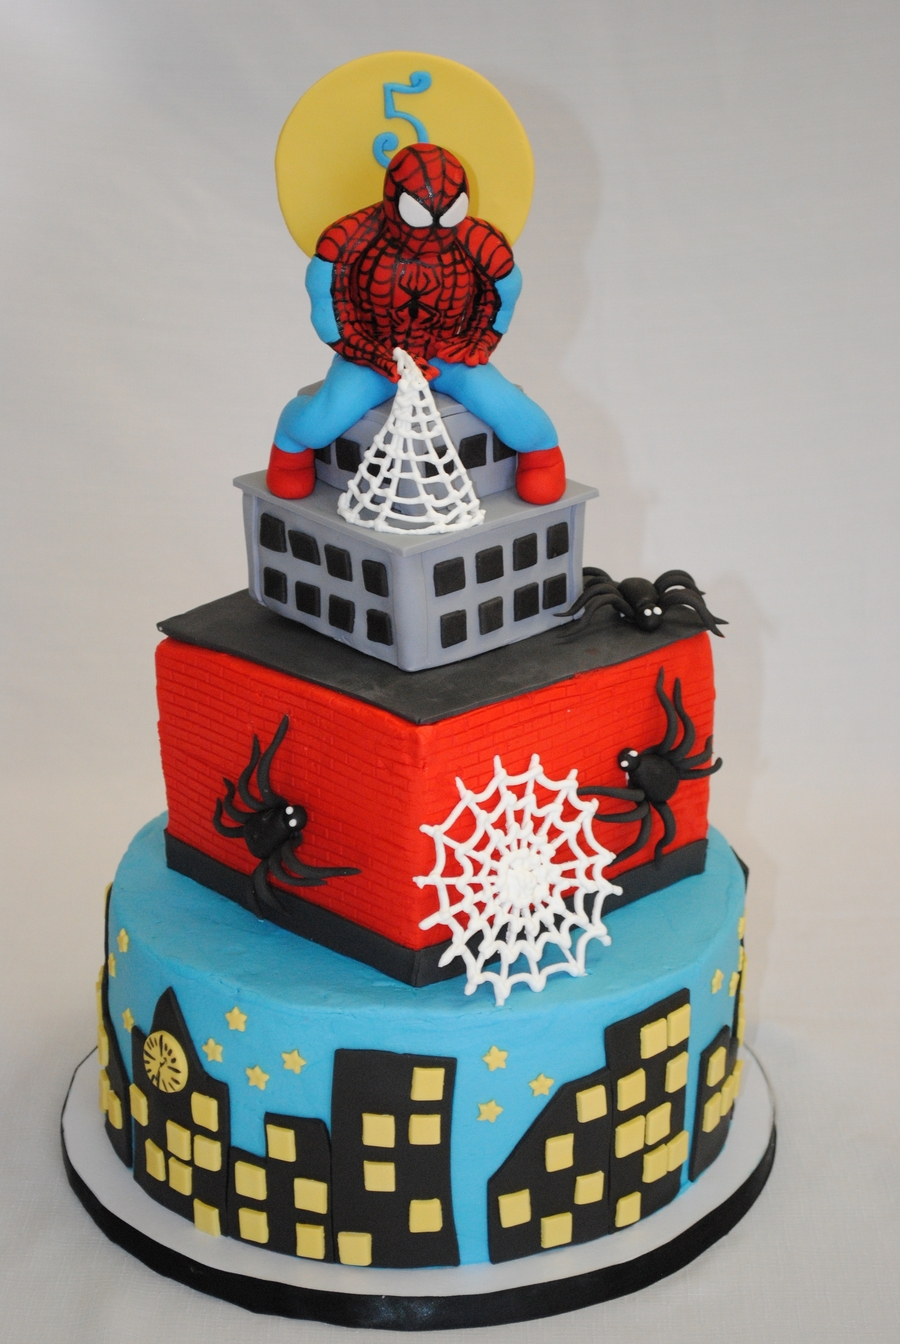 Fabulous Spiderman Birthday Cake Cakecentral Com Personalised Birthday Cards Beptaeletsinfo